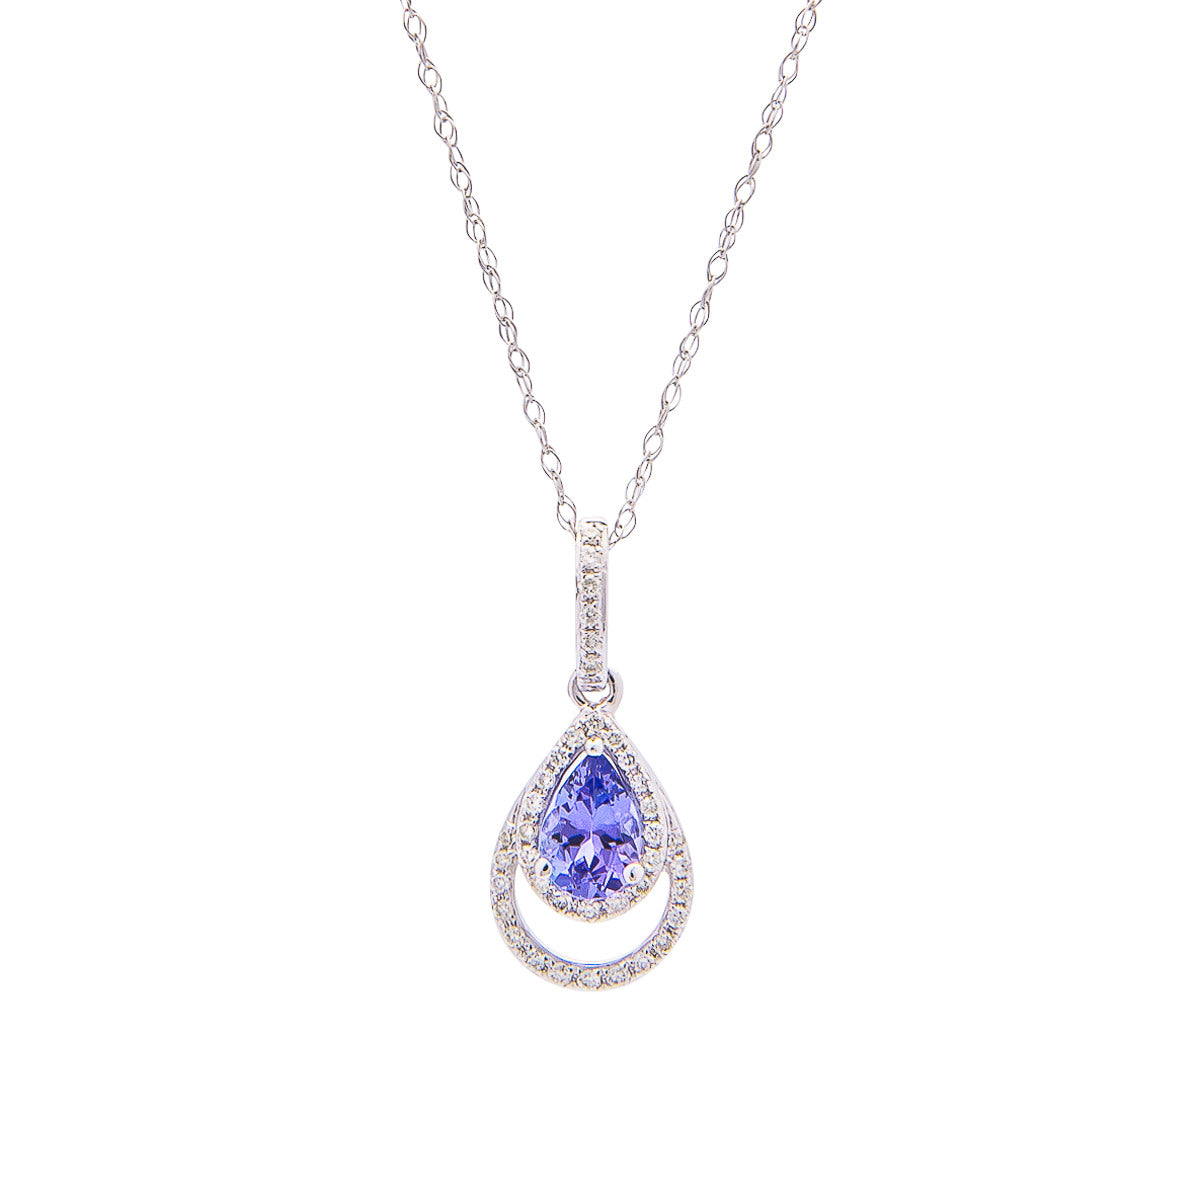 Sabel Collection 14K White Gold Pear Shape Tanzanite and Diamond Pendant